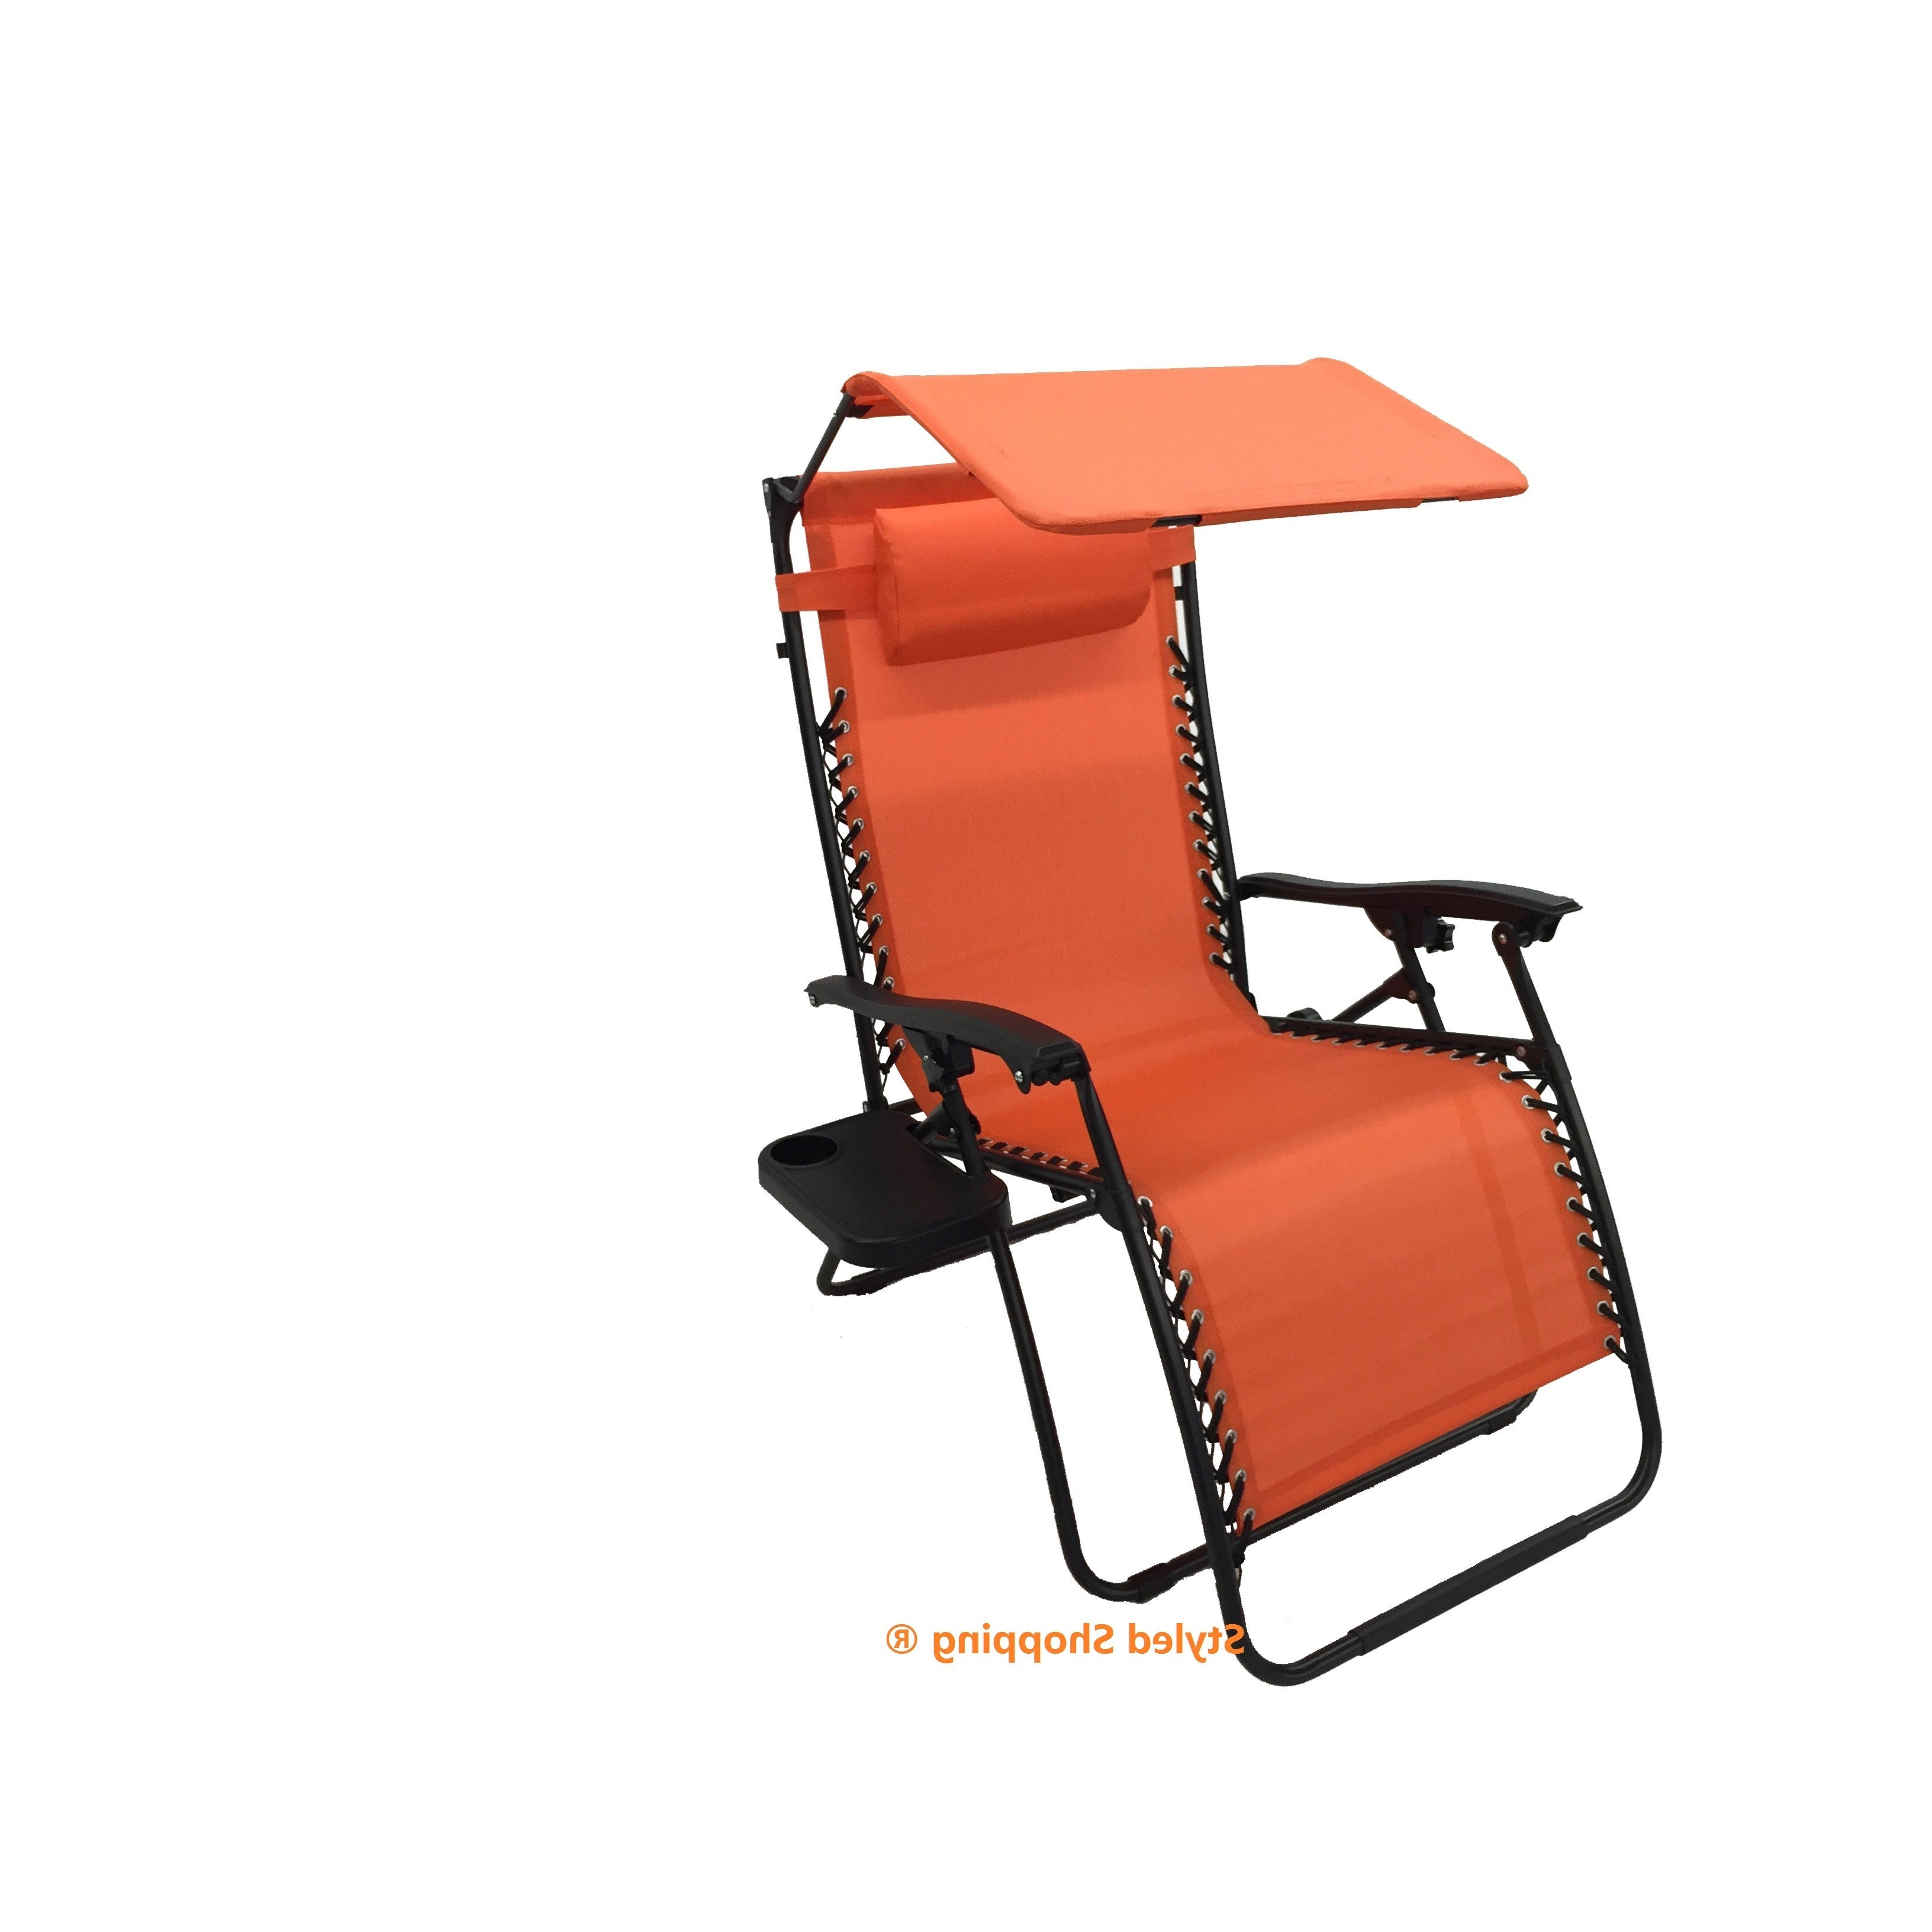 Preferred Mesh Fabric With Steel Frame Zero Gravity Chair With Canopy And Tray Regarding Oversized Extra Large Chairs With Canopy And Tray (View 21 of 25)